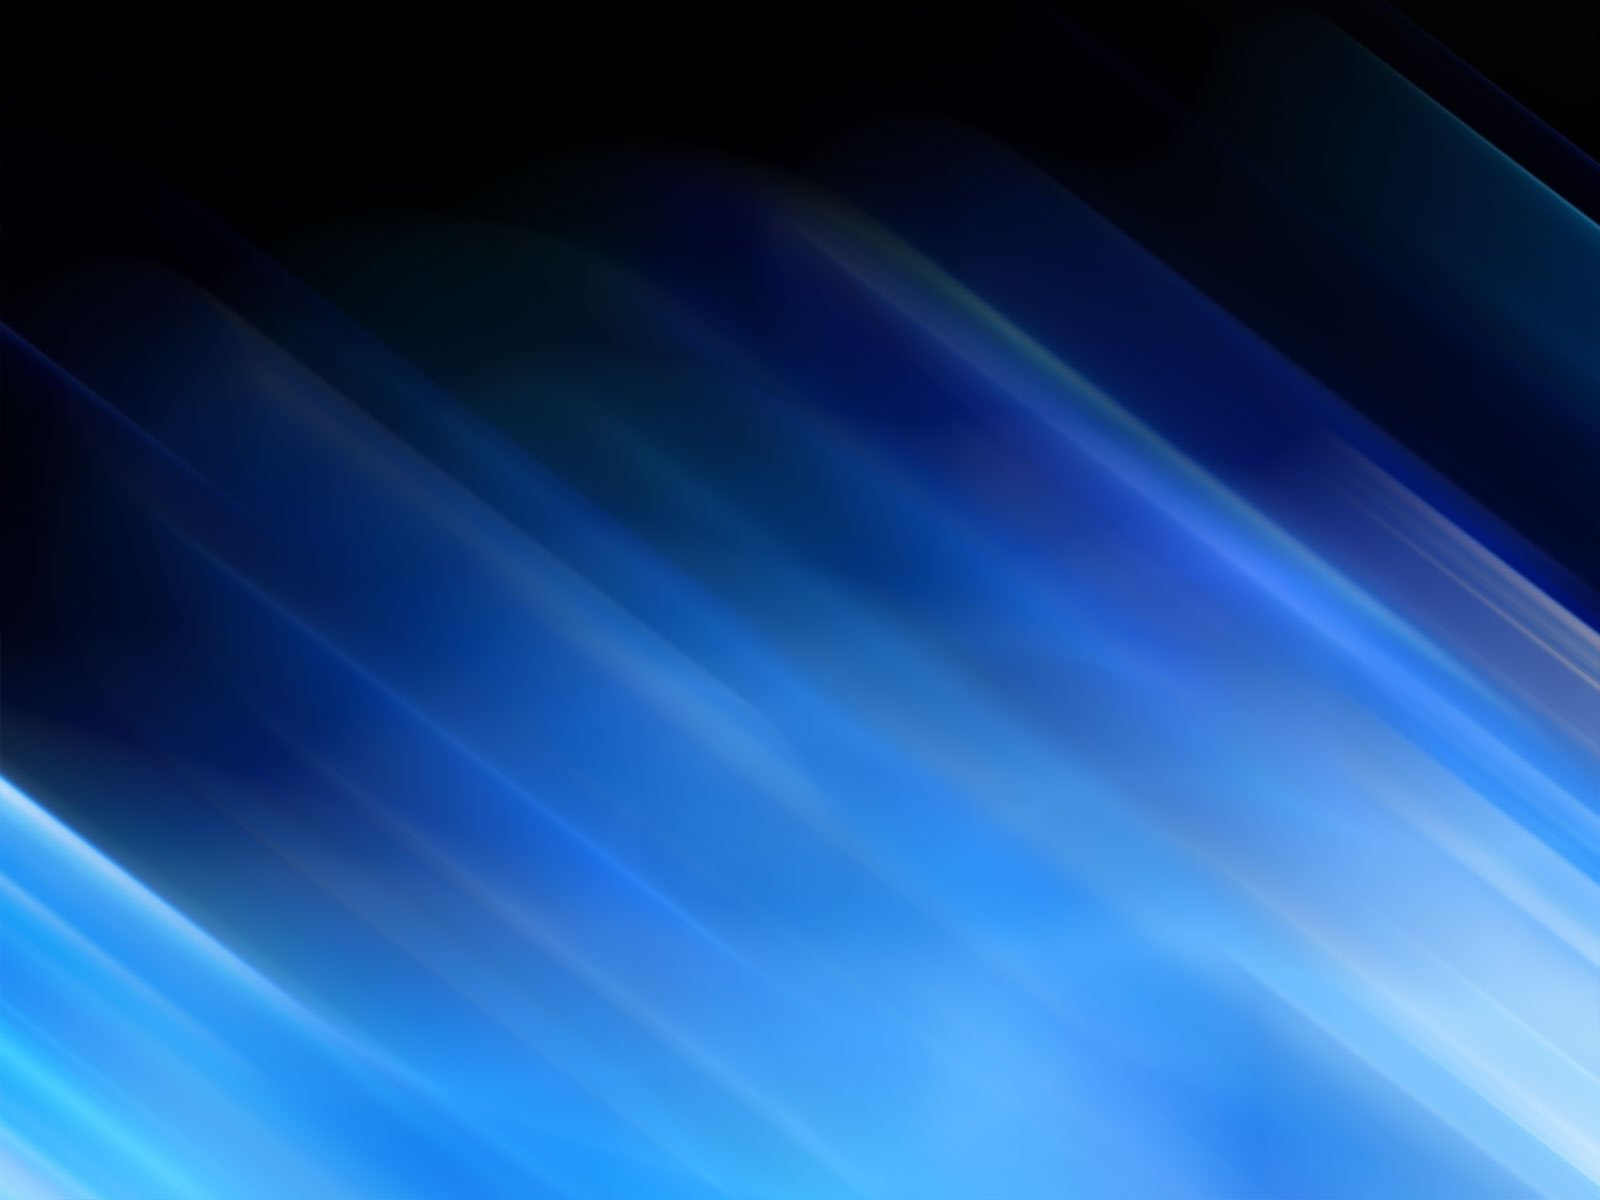 Info Wallpapers hd wallpaper abstract blue 1600x1200